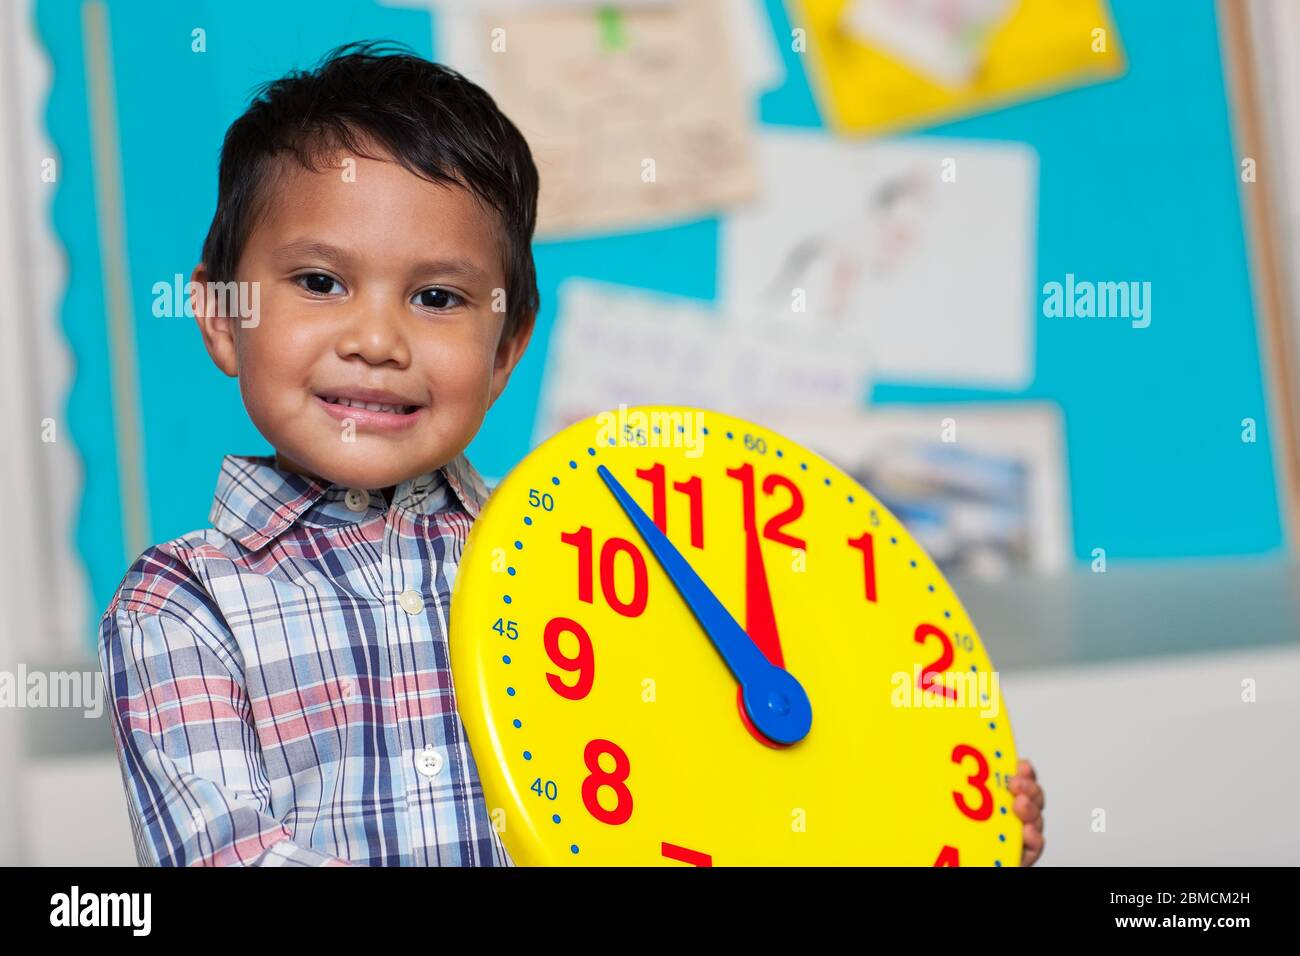 Young boy with a preppy shirt, holding a big analog clock with a colorful bulleting board in the background. Stock Photo